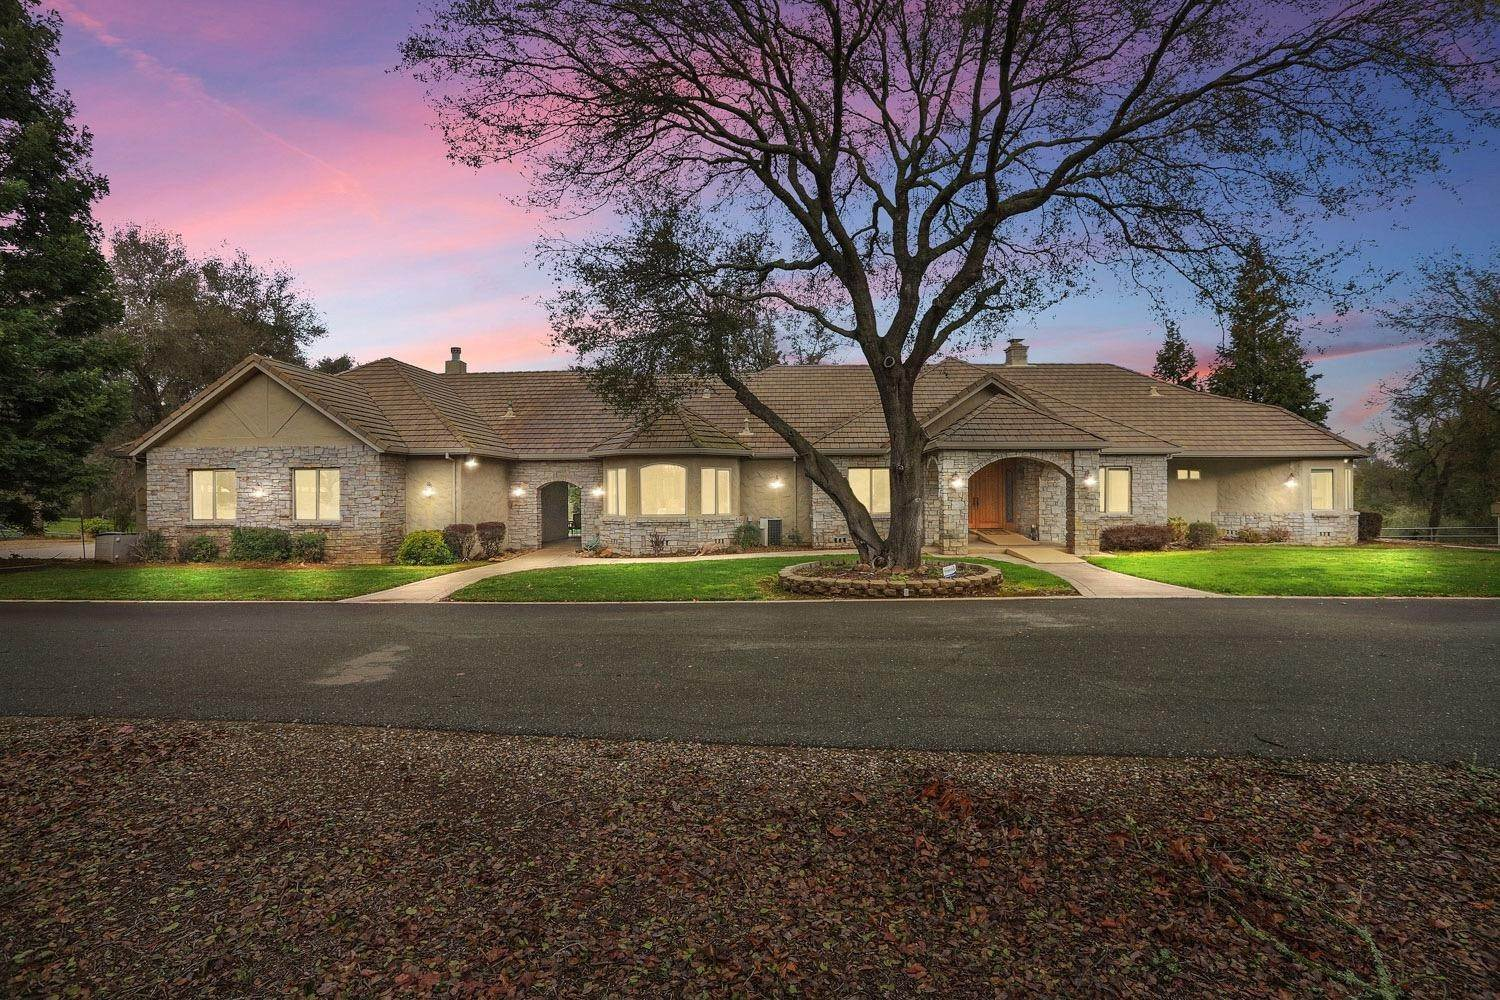 Single Family Homes for Active at 24521 N Mcintire Road Clements, California 95227 United States